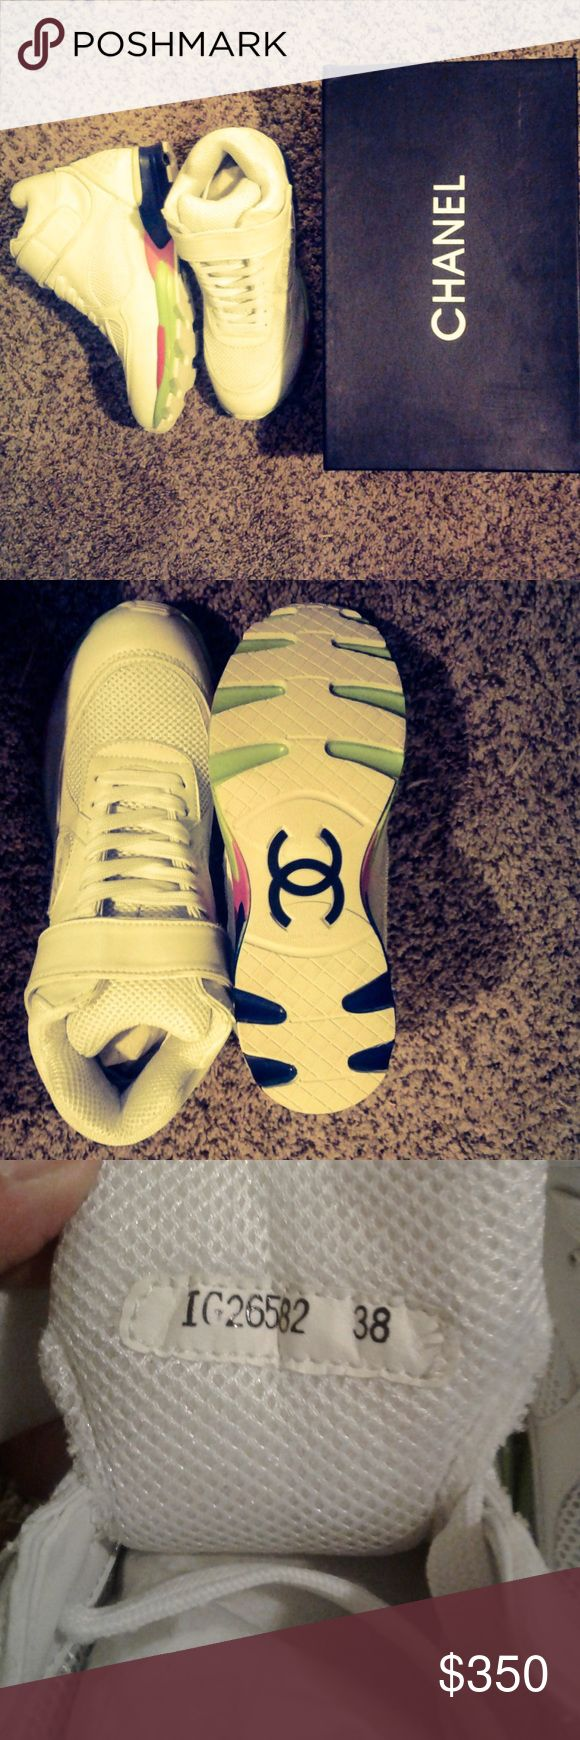 Christmas sale! 💞Chanel Tennis Shoes. Authletic. Brand new. Size: 8. I have only 2 pair white sneakers. CHANEL Shoes Sneakers